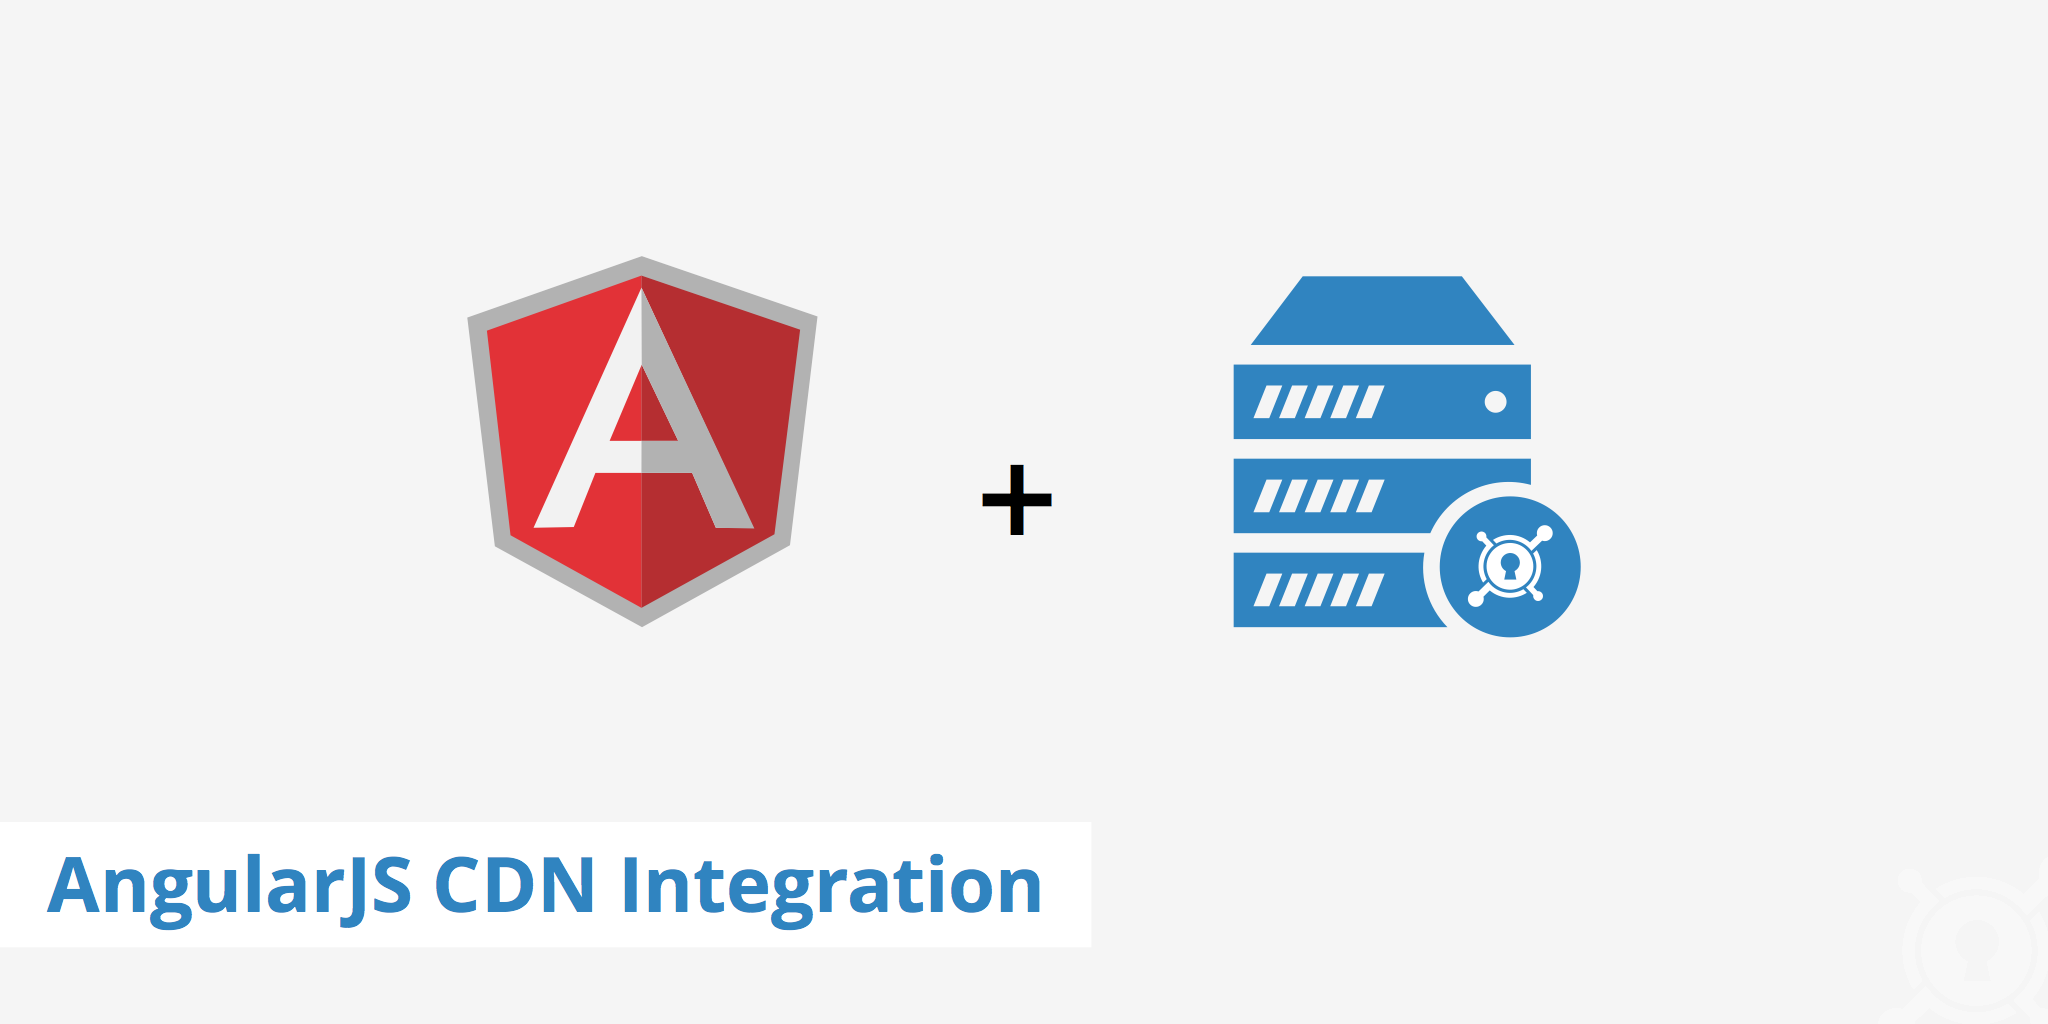 AngularJS CDN Integration - KeyCDN Support